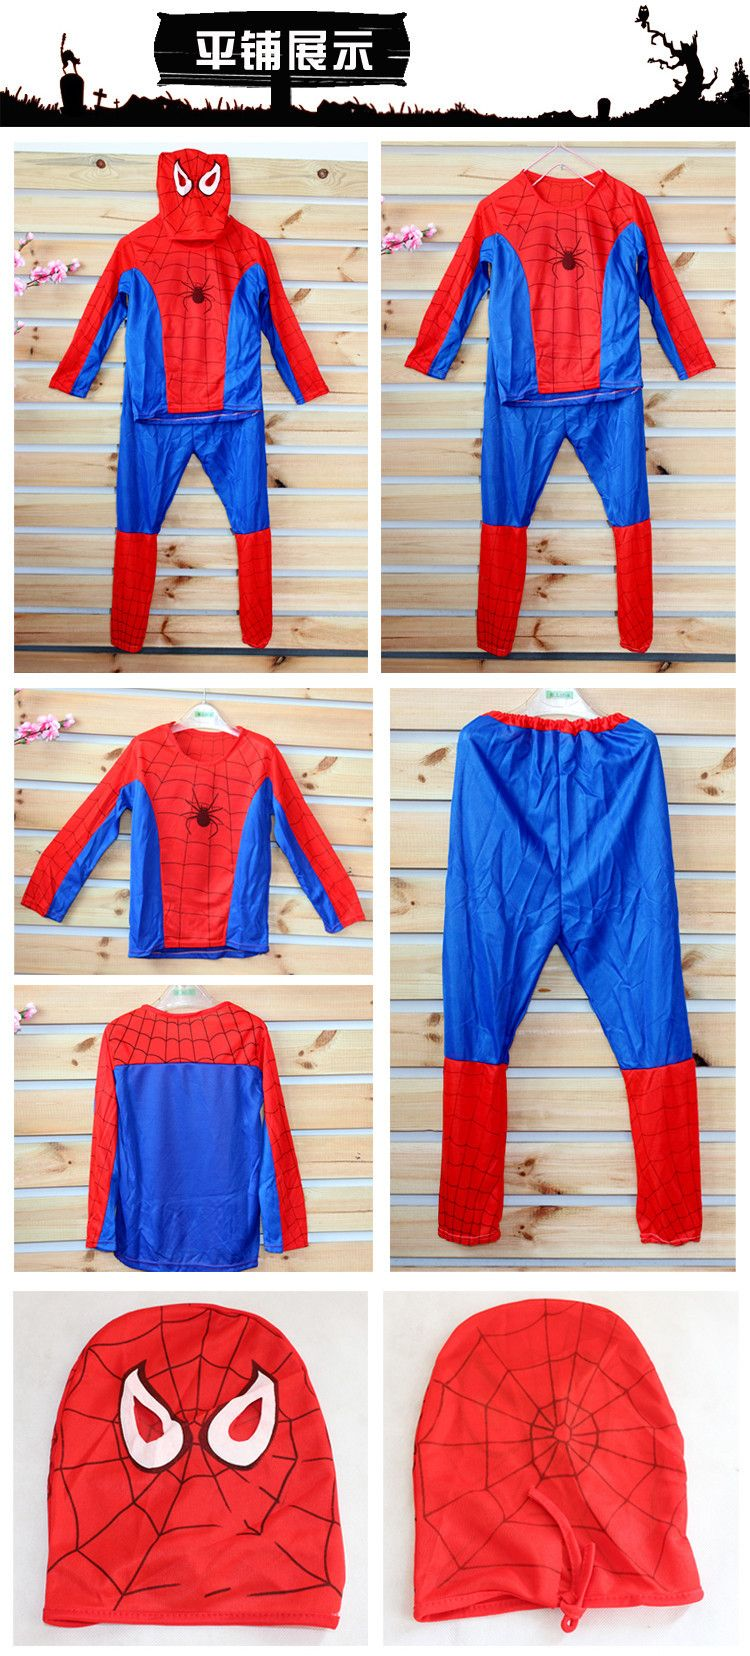 hot sale spiderman halloween costumes for children hot kids christmas costume free shipping. Black Bedroom Furniture Sets. Home Design Ideas